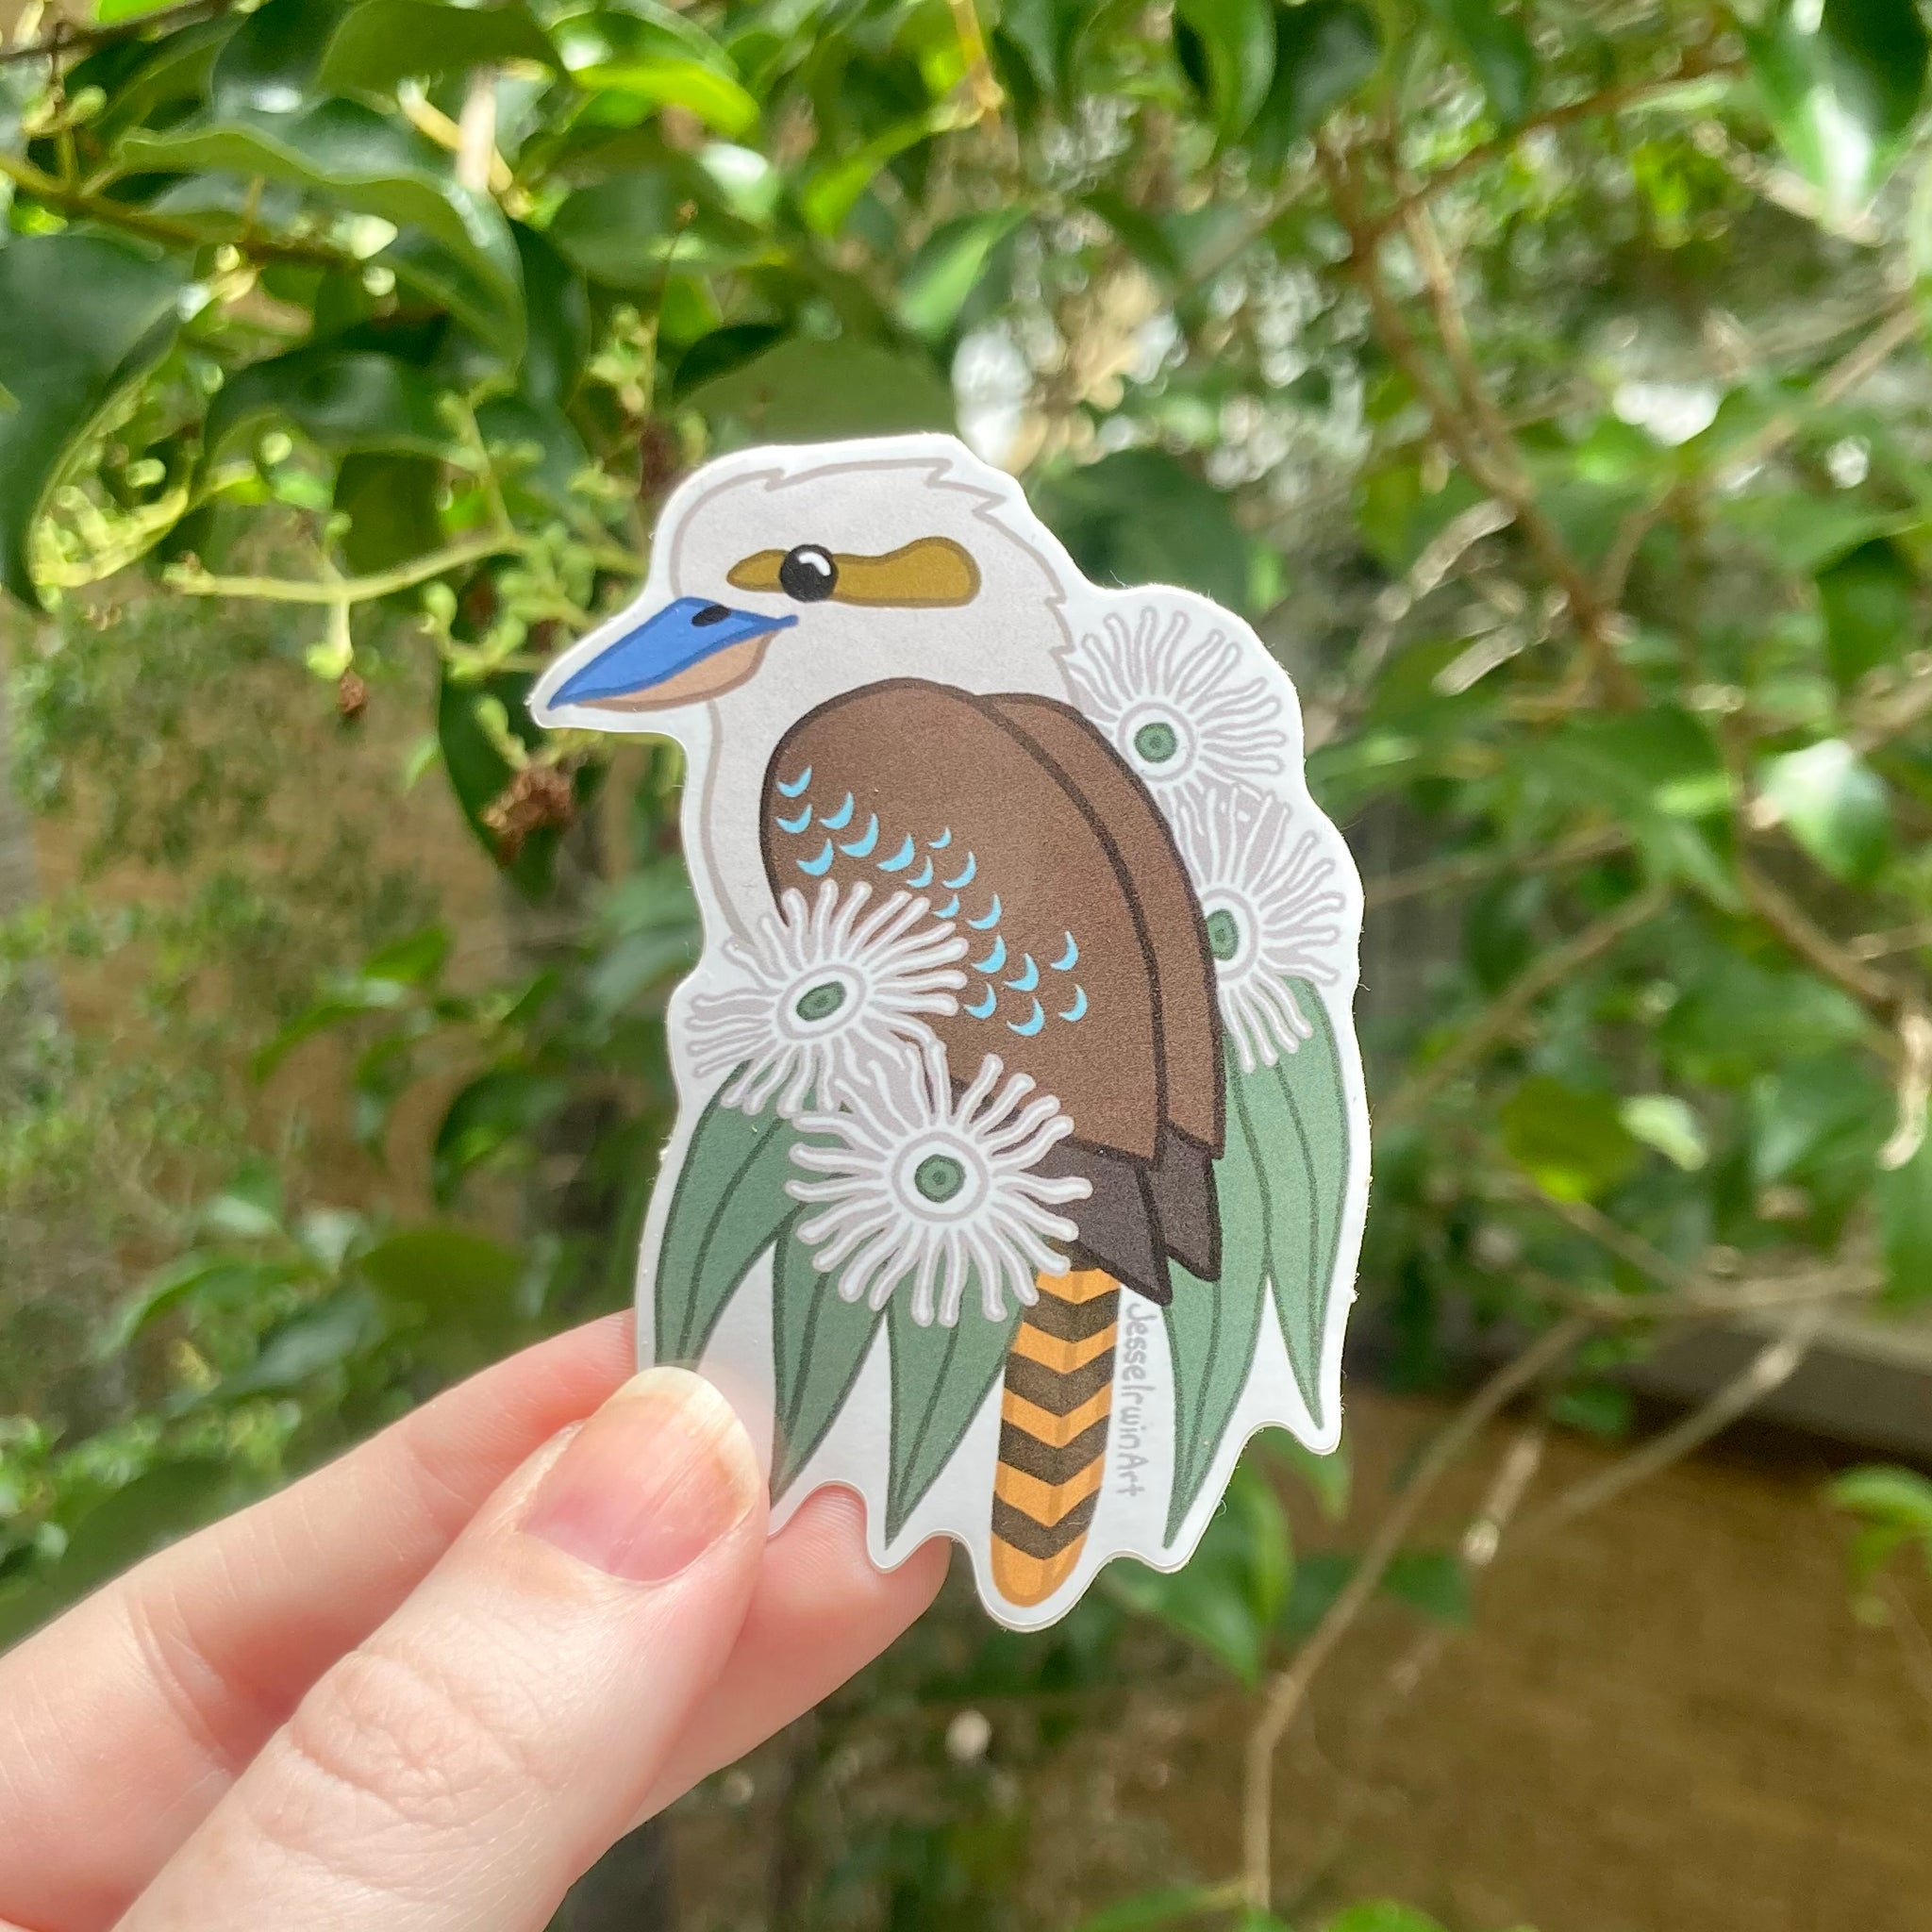 Kookaburra and Ghost Gum Blossom Vinyl Sticker